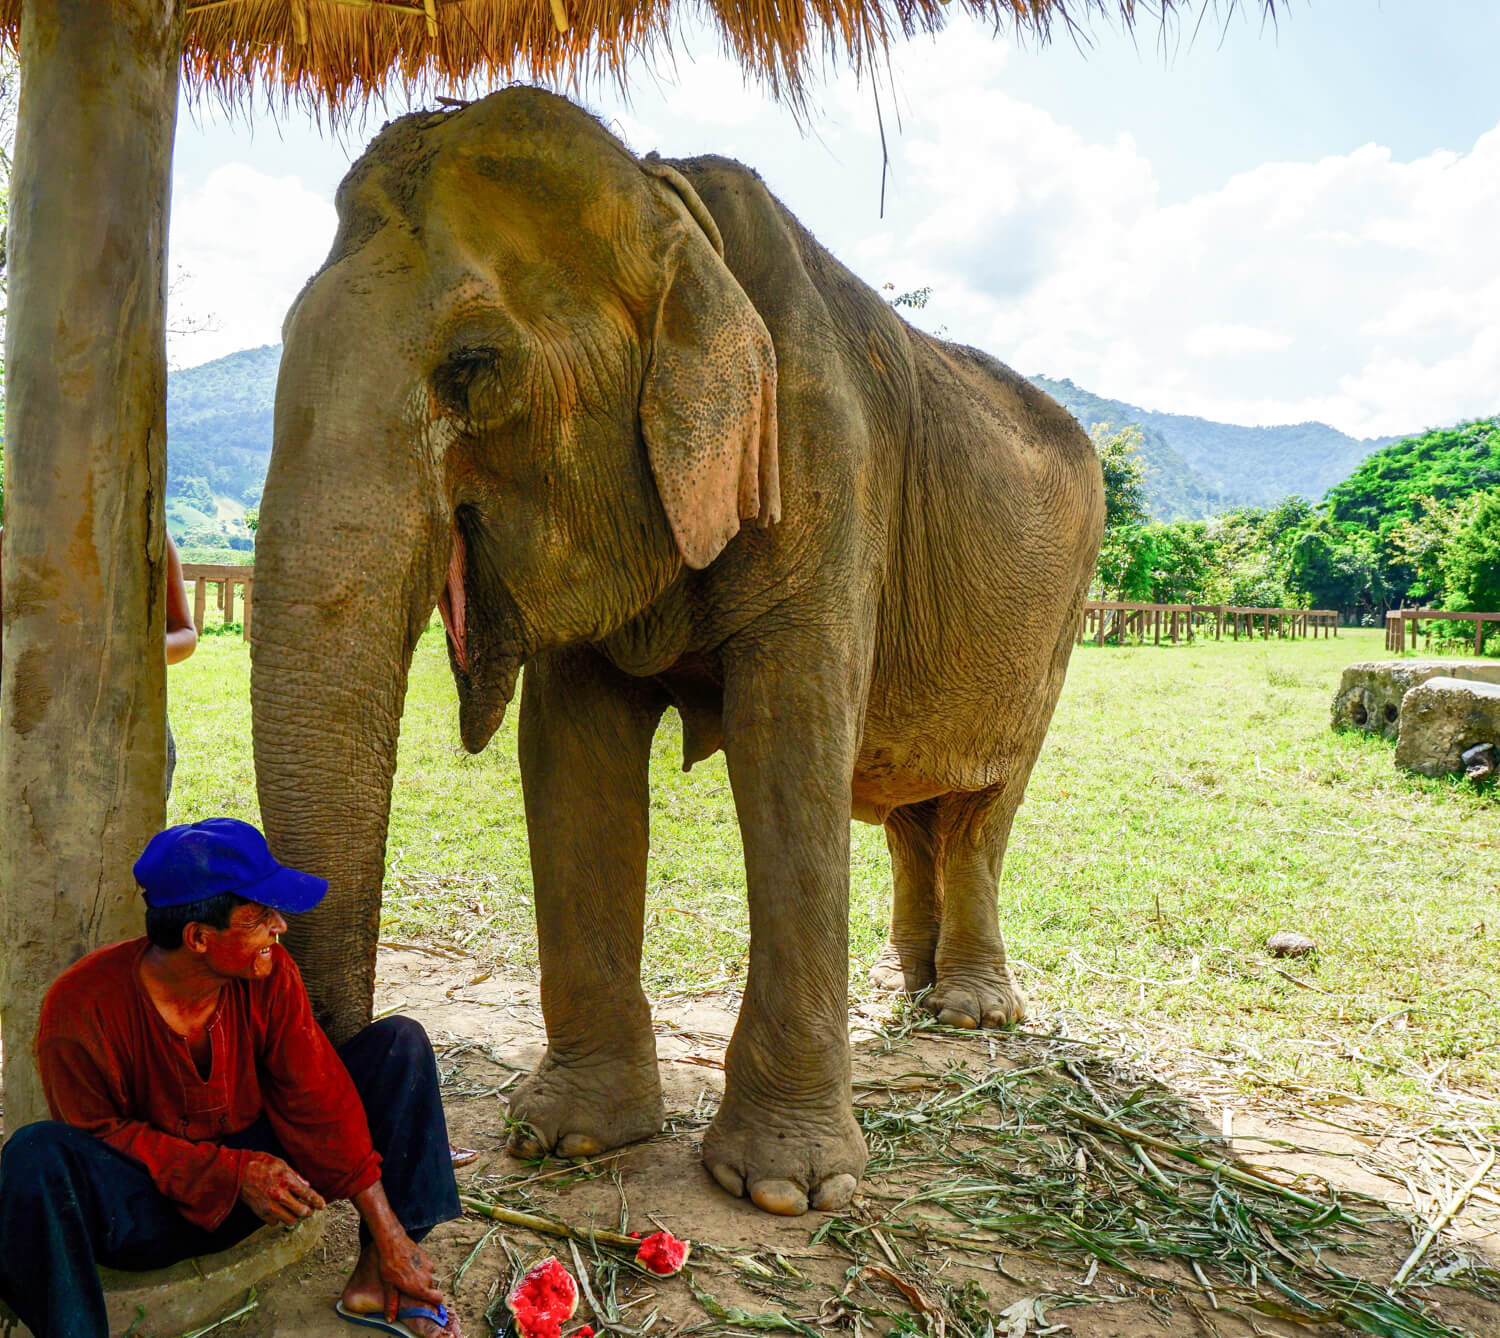 An elephant at The Elephant Nature Park laughing with its mahout